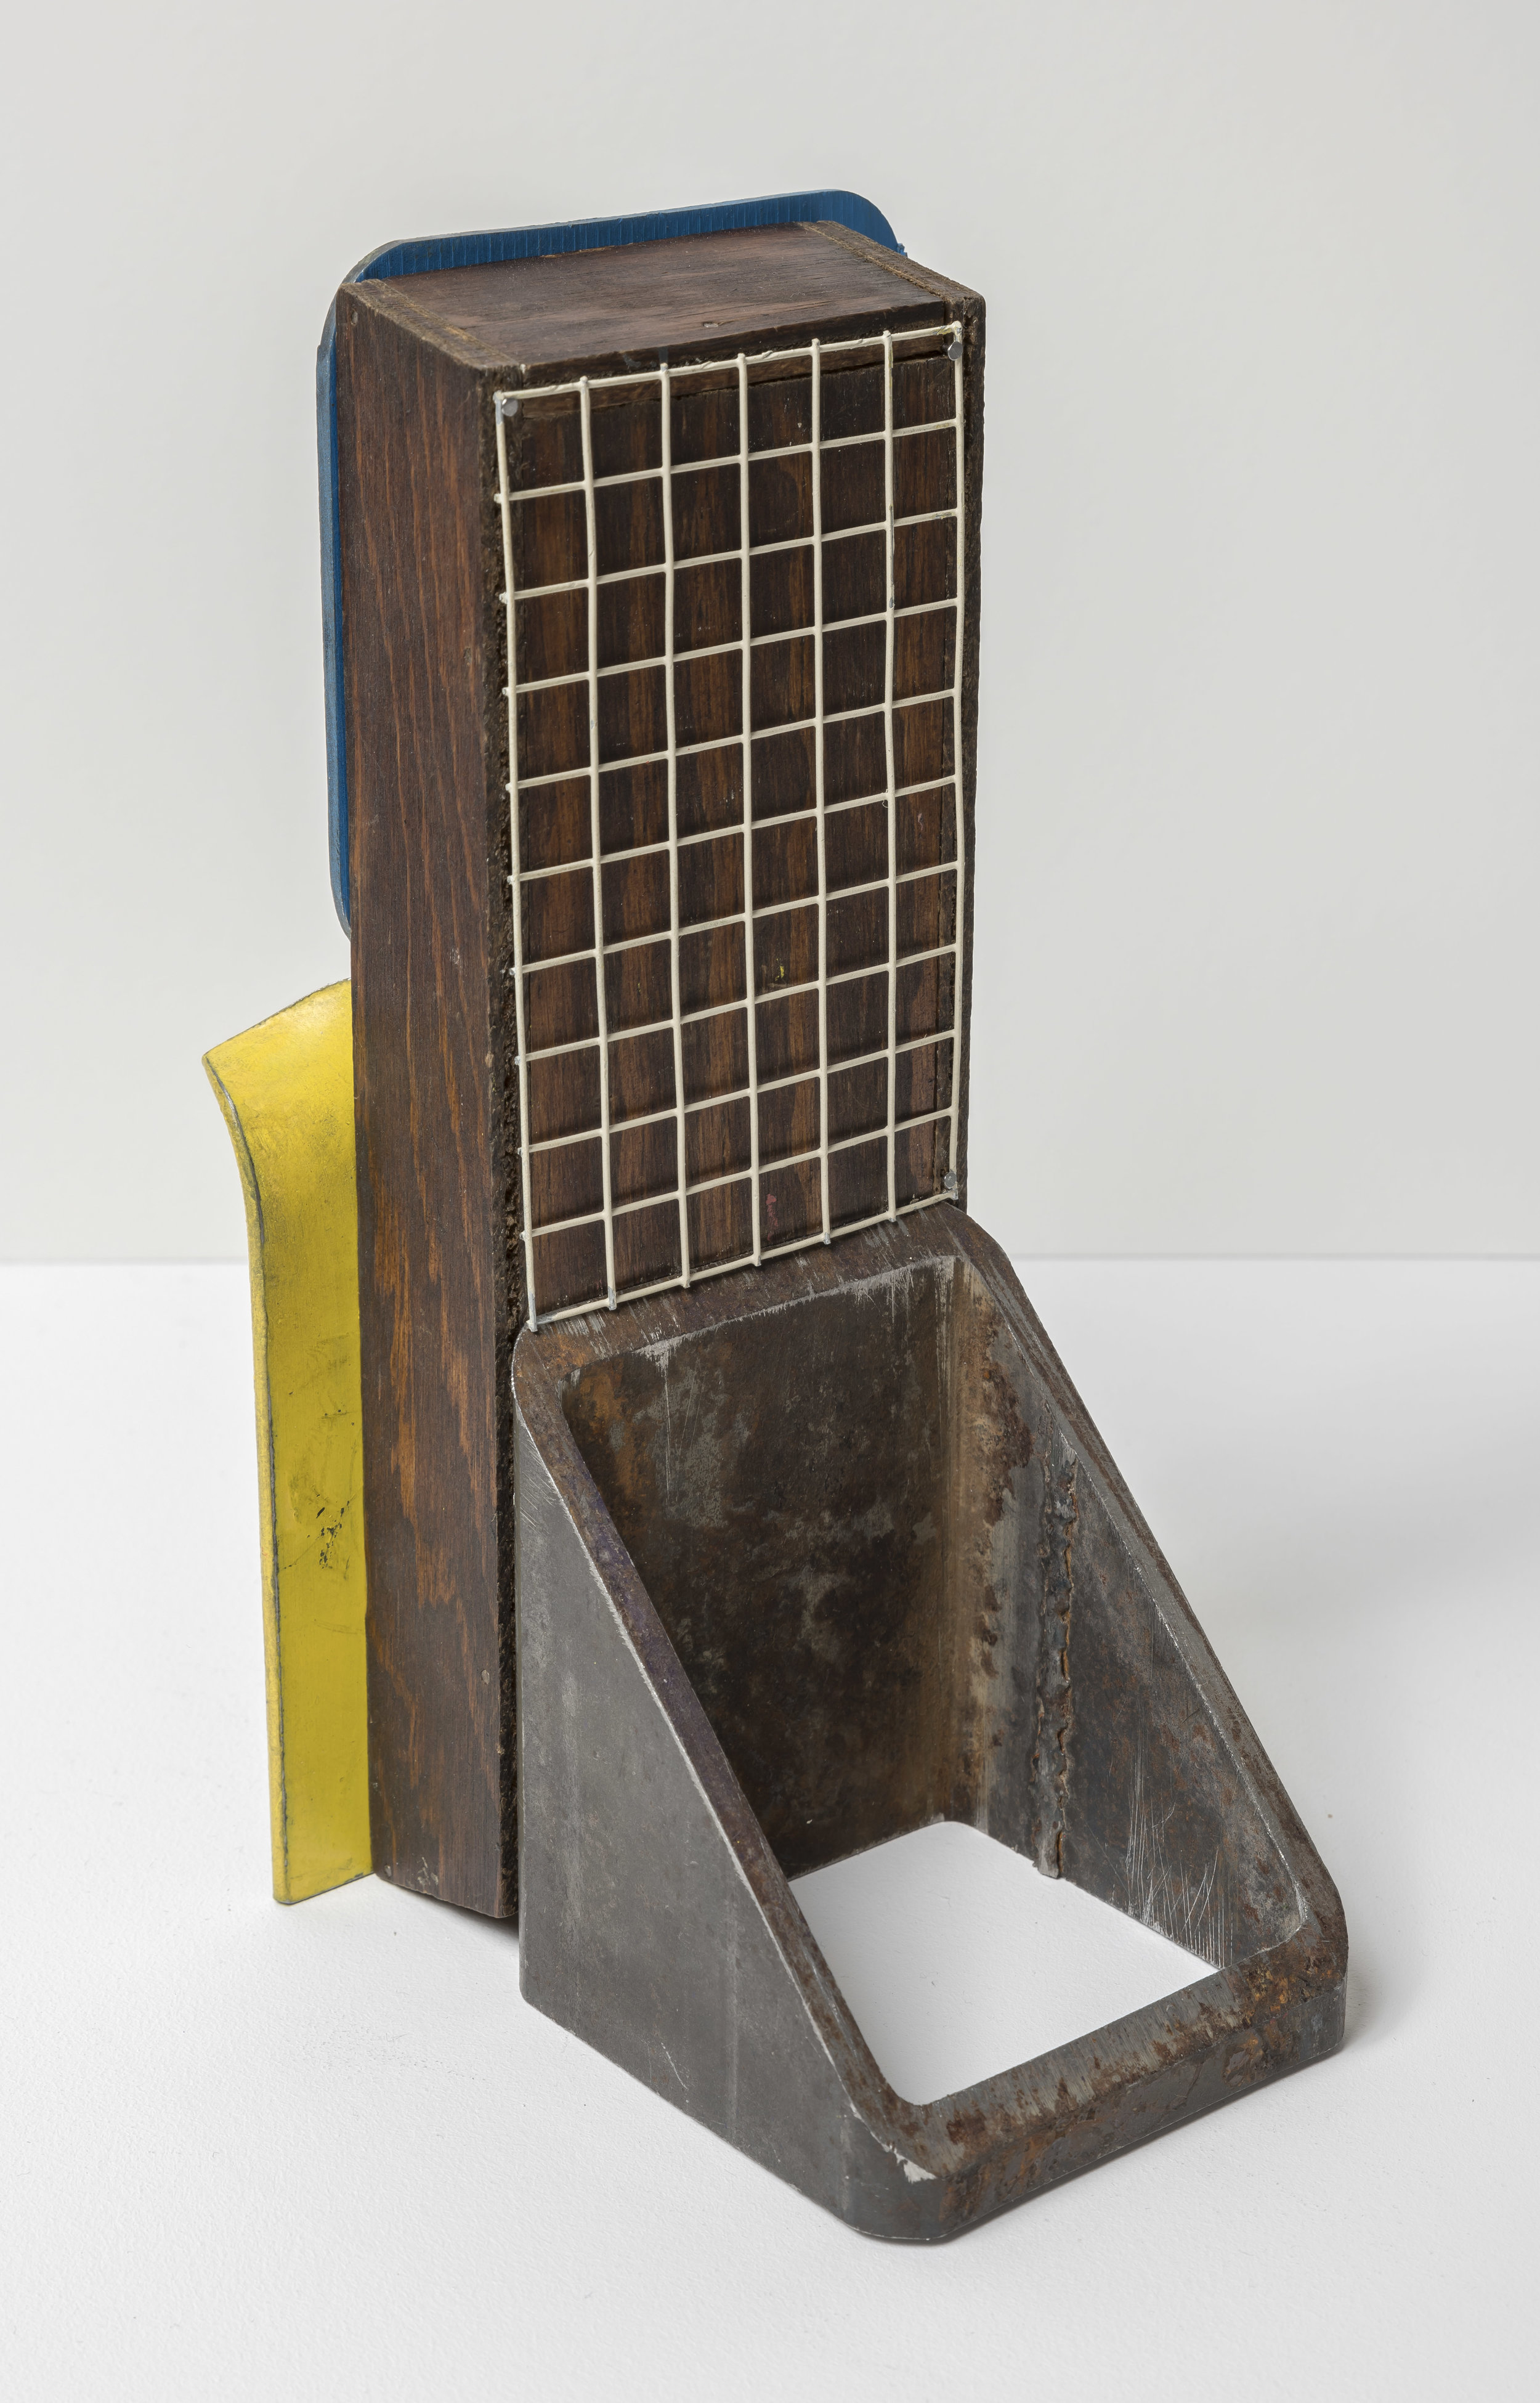 Assemblage IV, 2019  steel, wood, magnet, aerosol paint 4 x 9 1/2 x 5 inches; 10.2 x 24.1 x 12.7 centimeters  $3,000.00